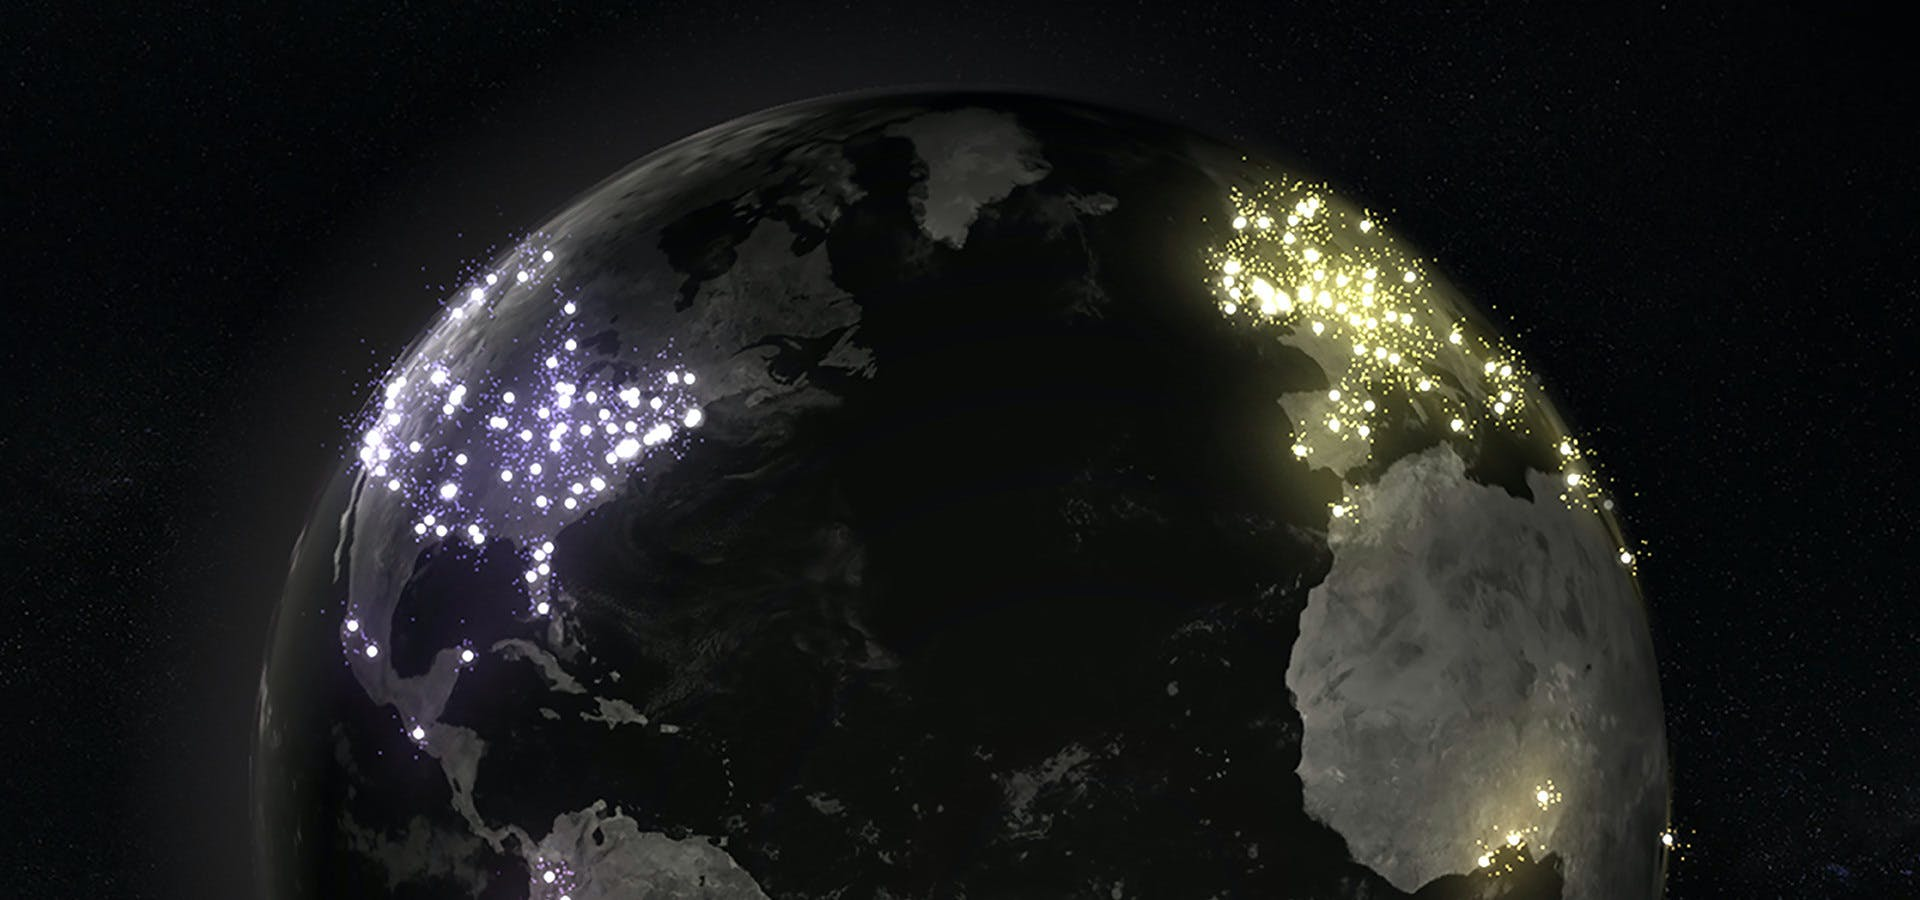 Top of globe with particles bursting from major cities.